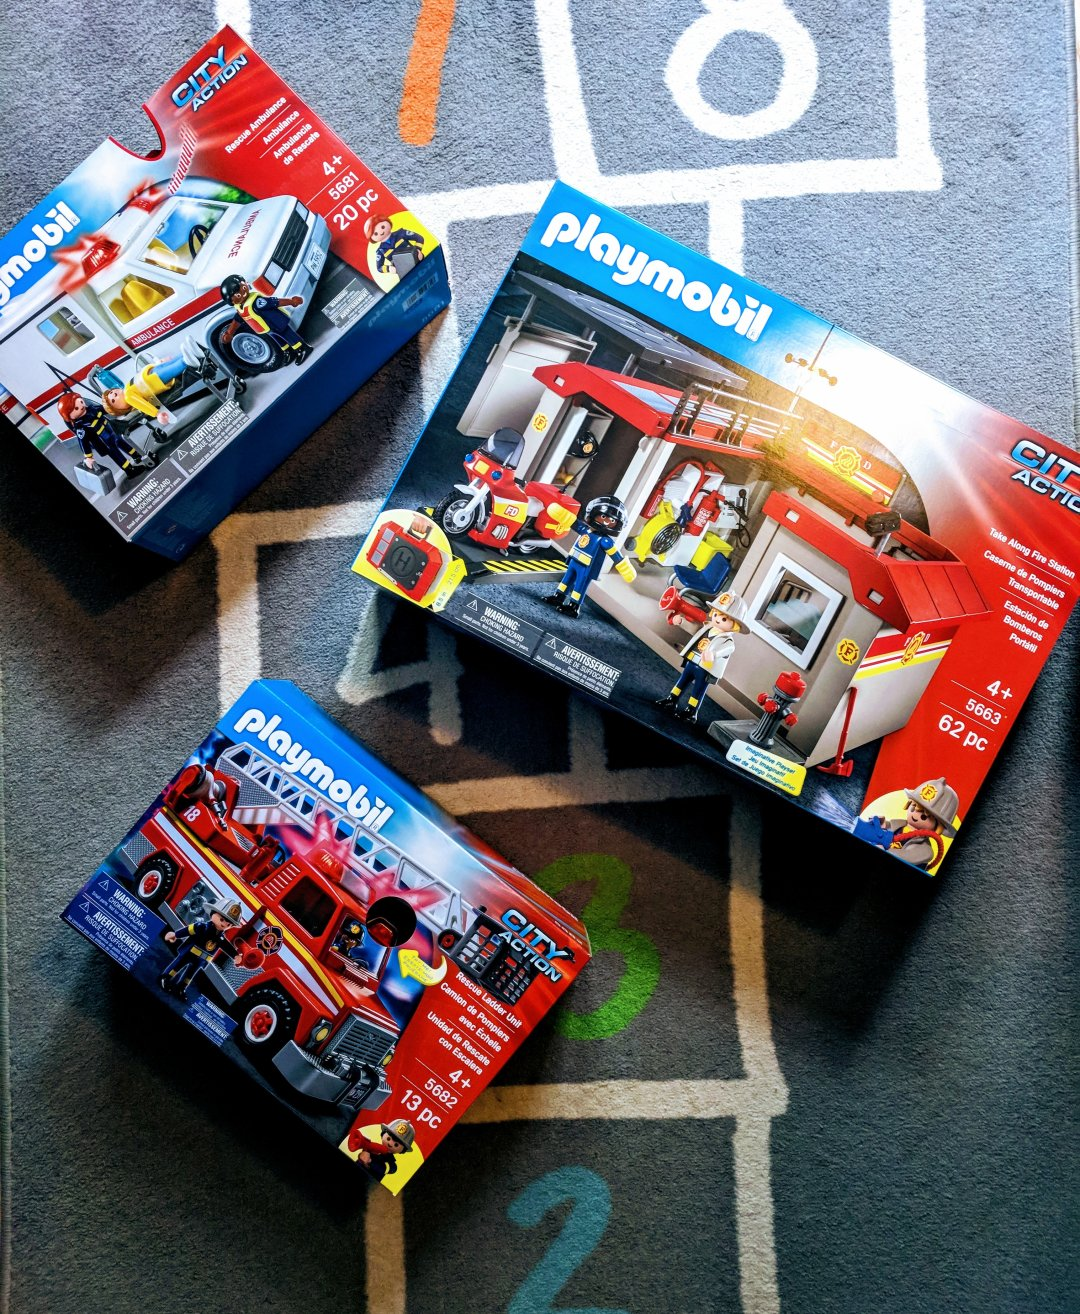 Hands On Learning With Playmobil Toys The Domestic Geek Blog Lego 5682 Duplo Fire Truck Curated Image Take Along Station Walmartcom